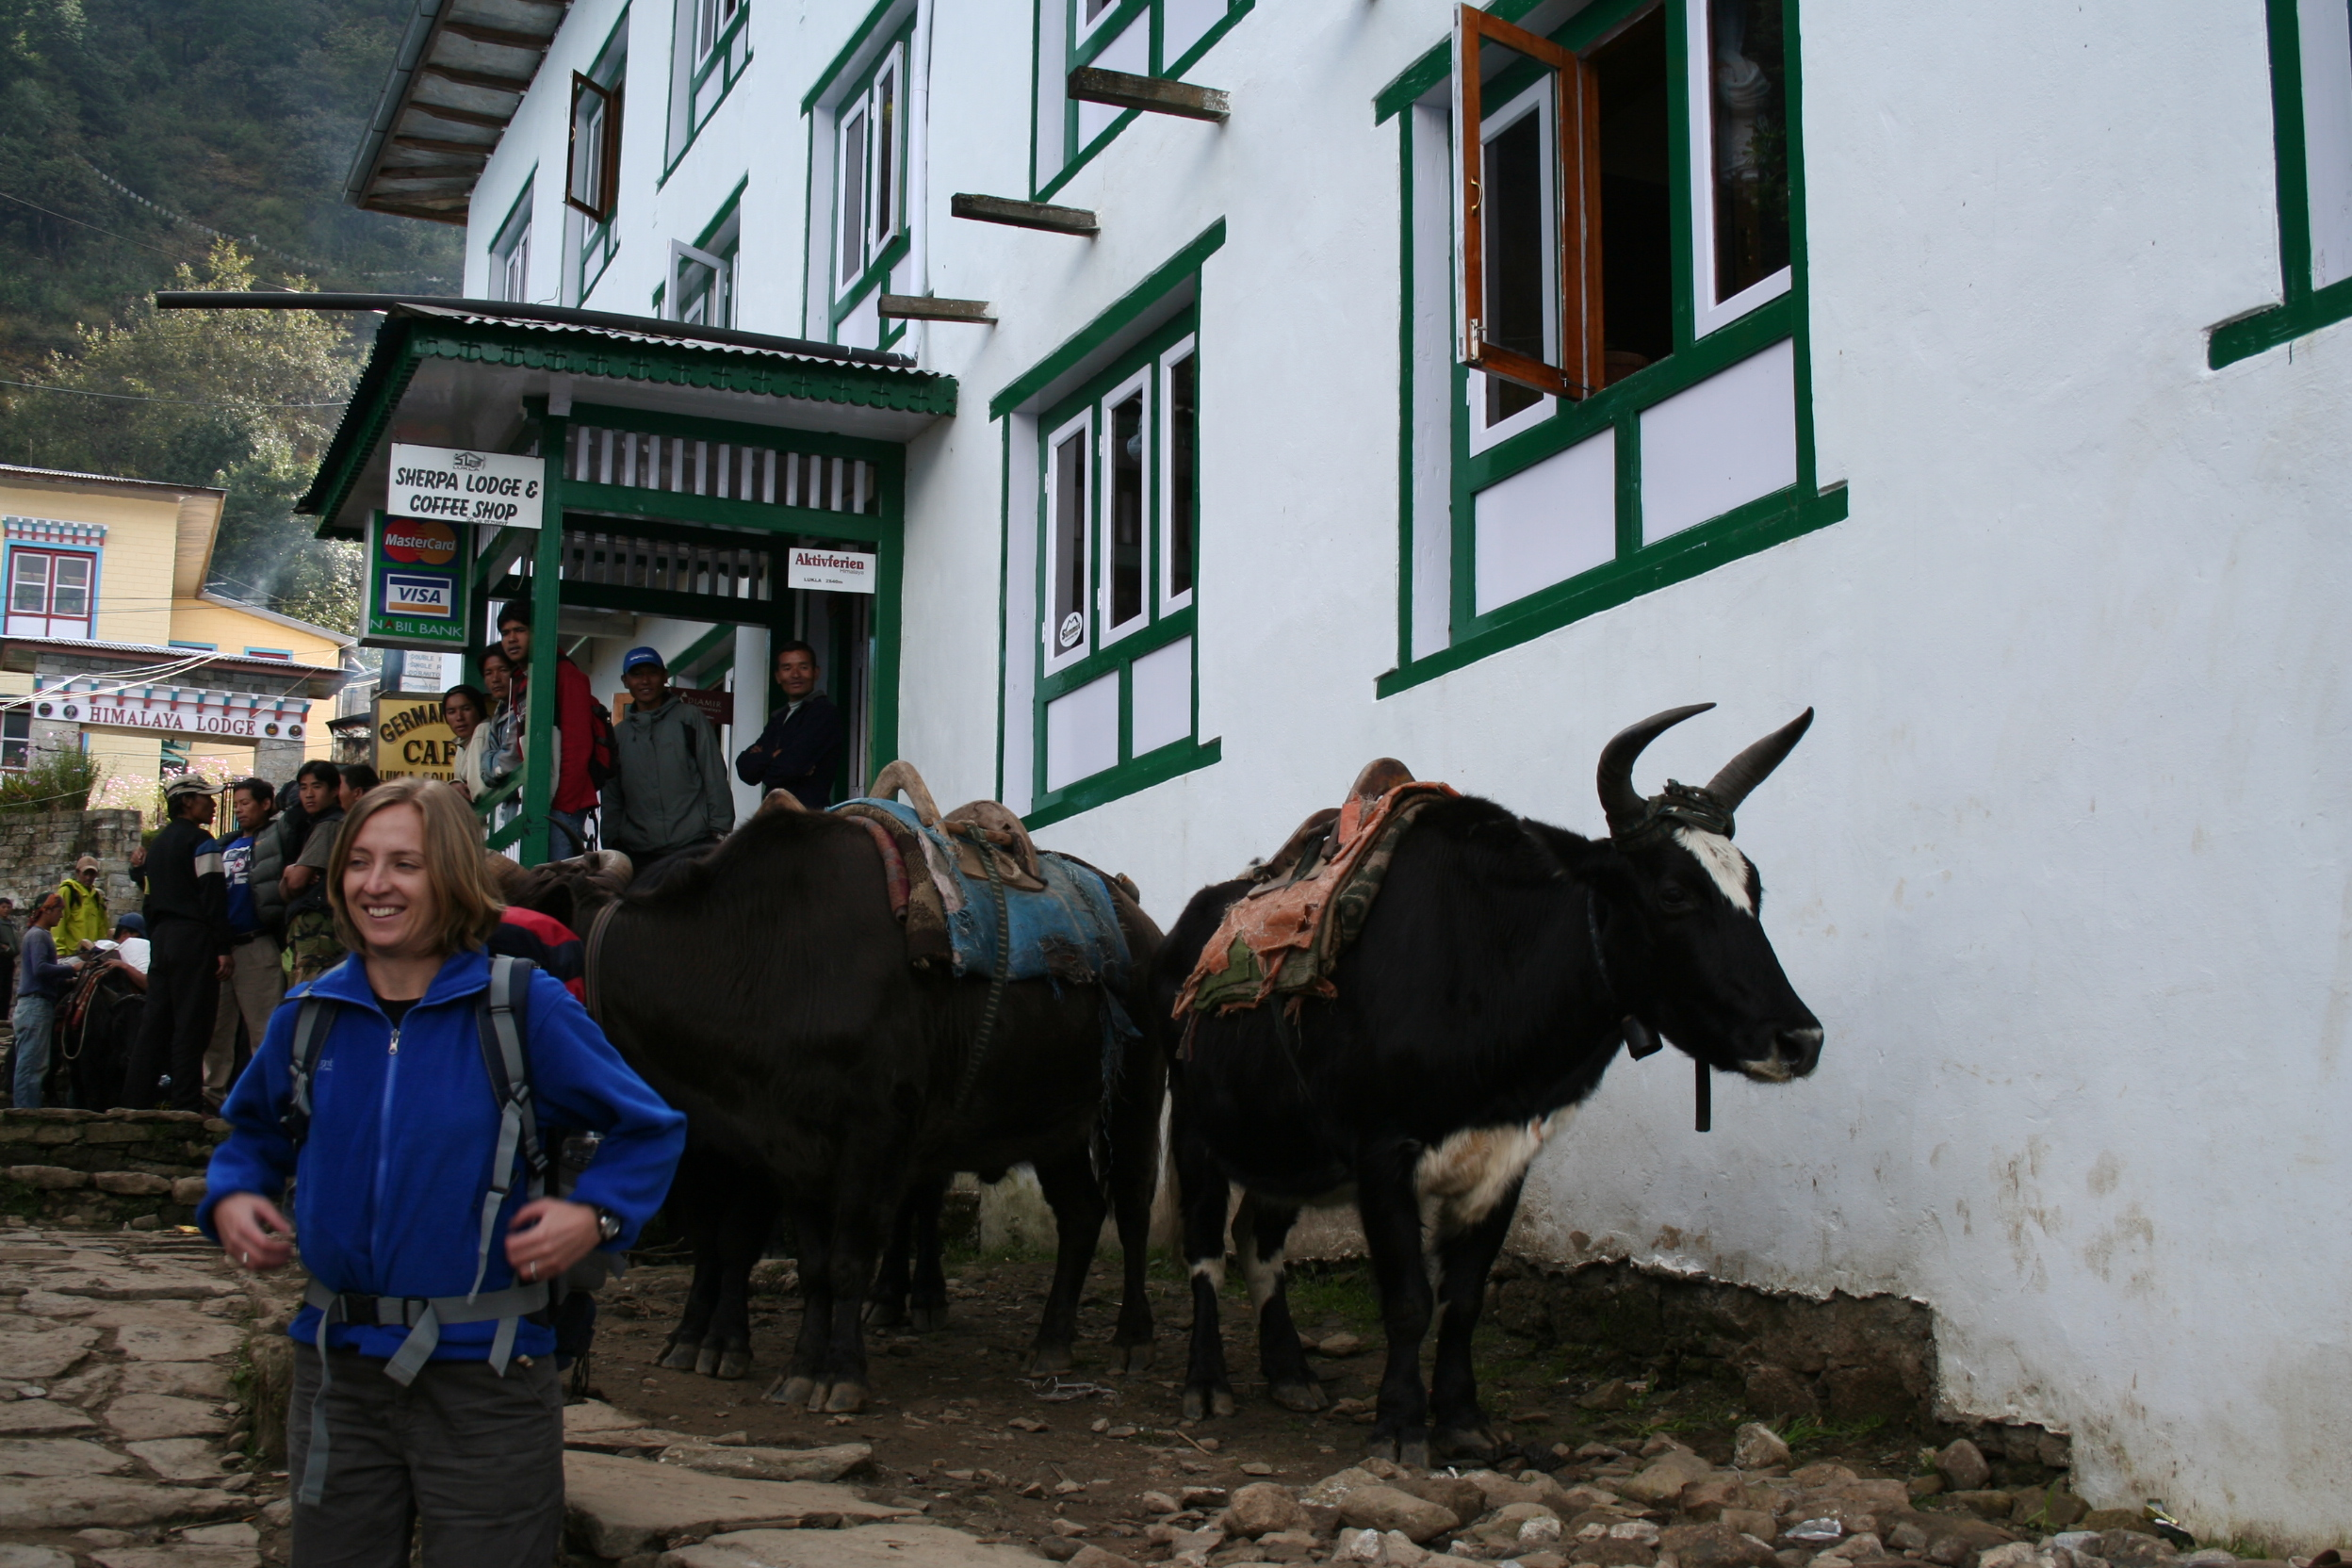 Elissa spent six months volunteering in Nepal (and fitted in some awesome treks along the way)